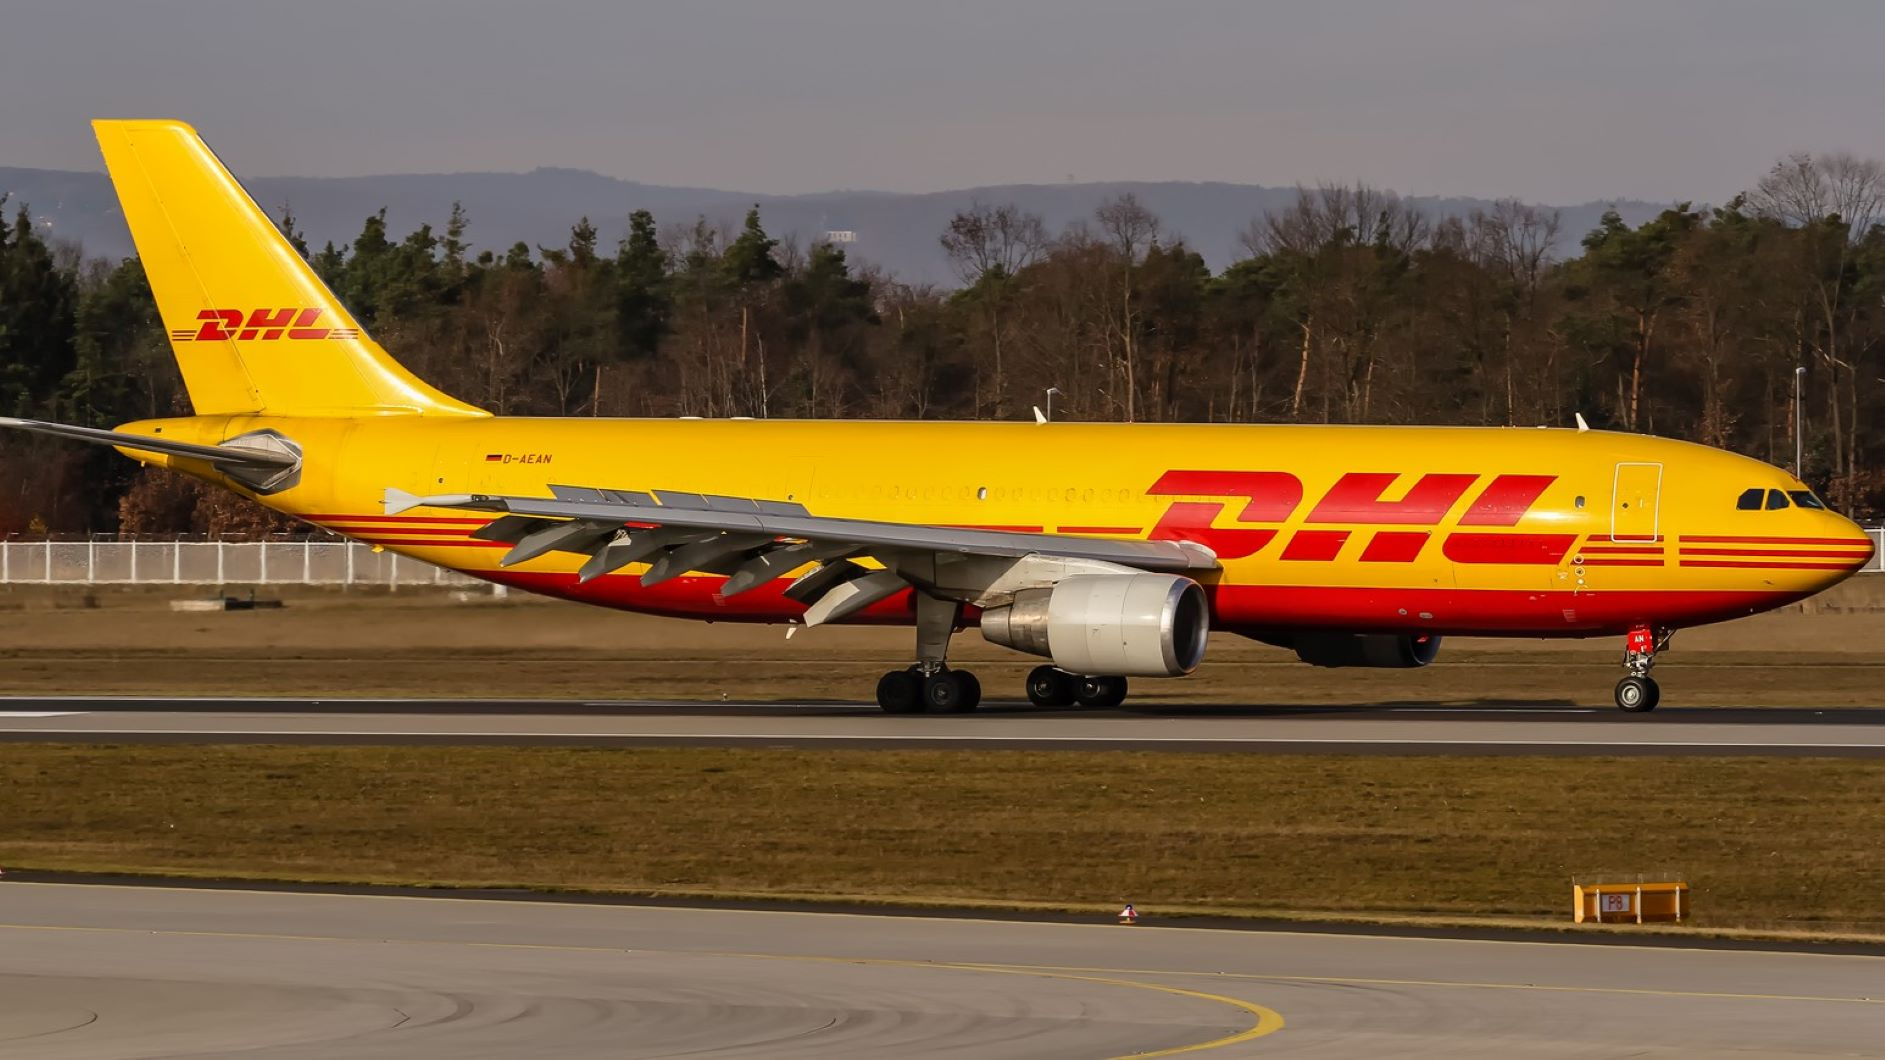 A mustard-colored DHL cargo jet on airport taxiway.